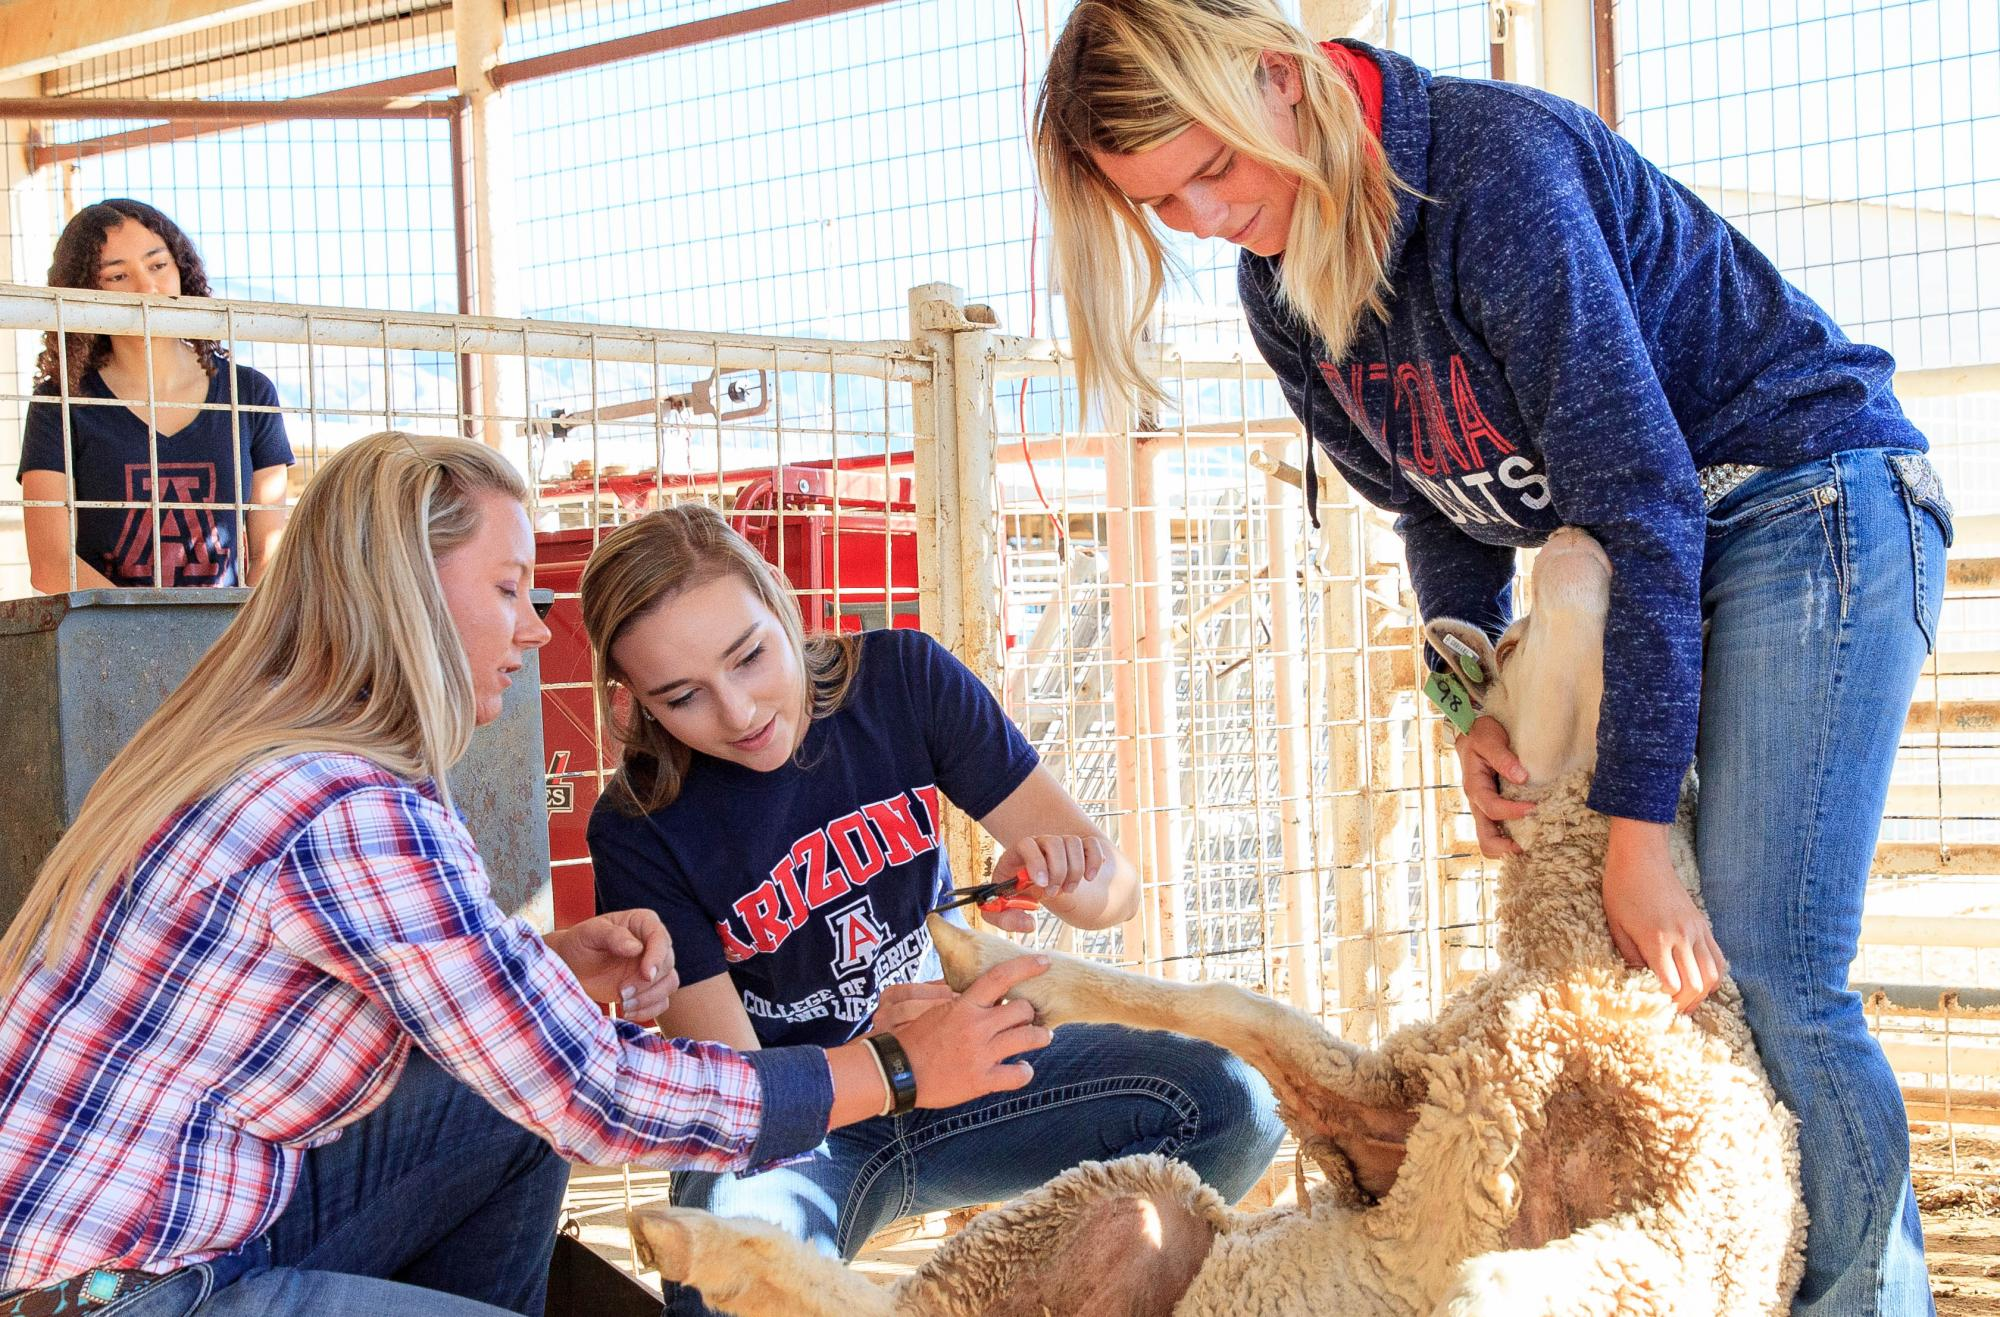 Students trimming hooves of sheep